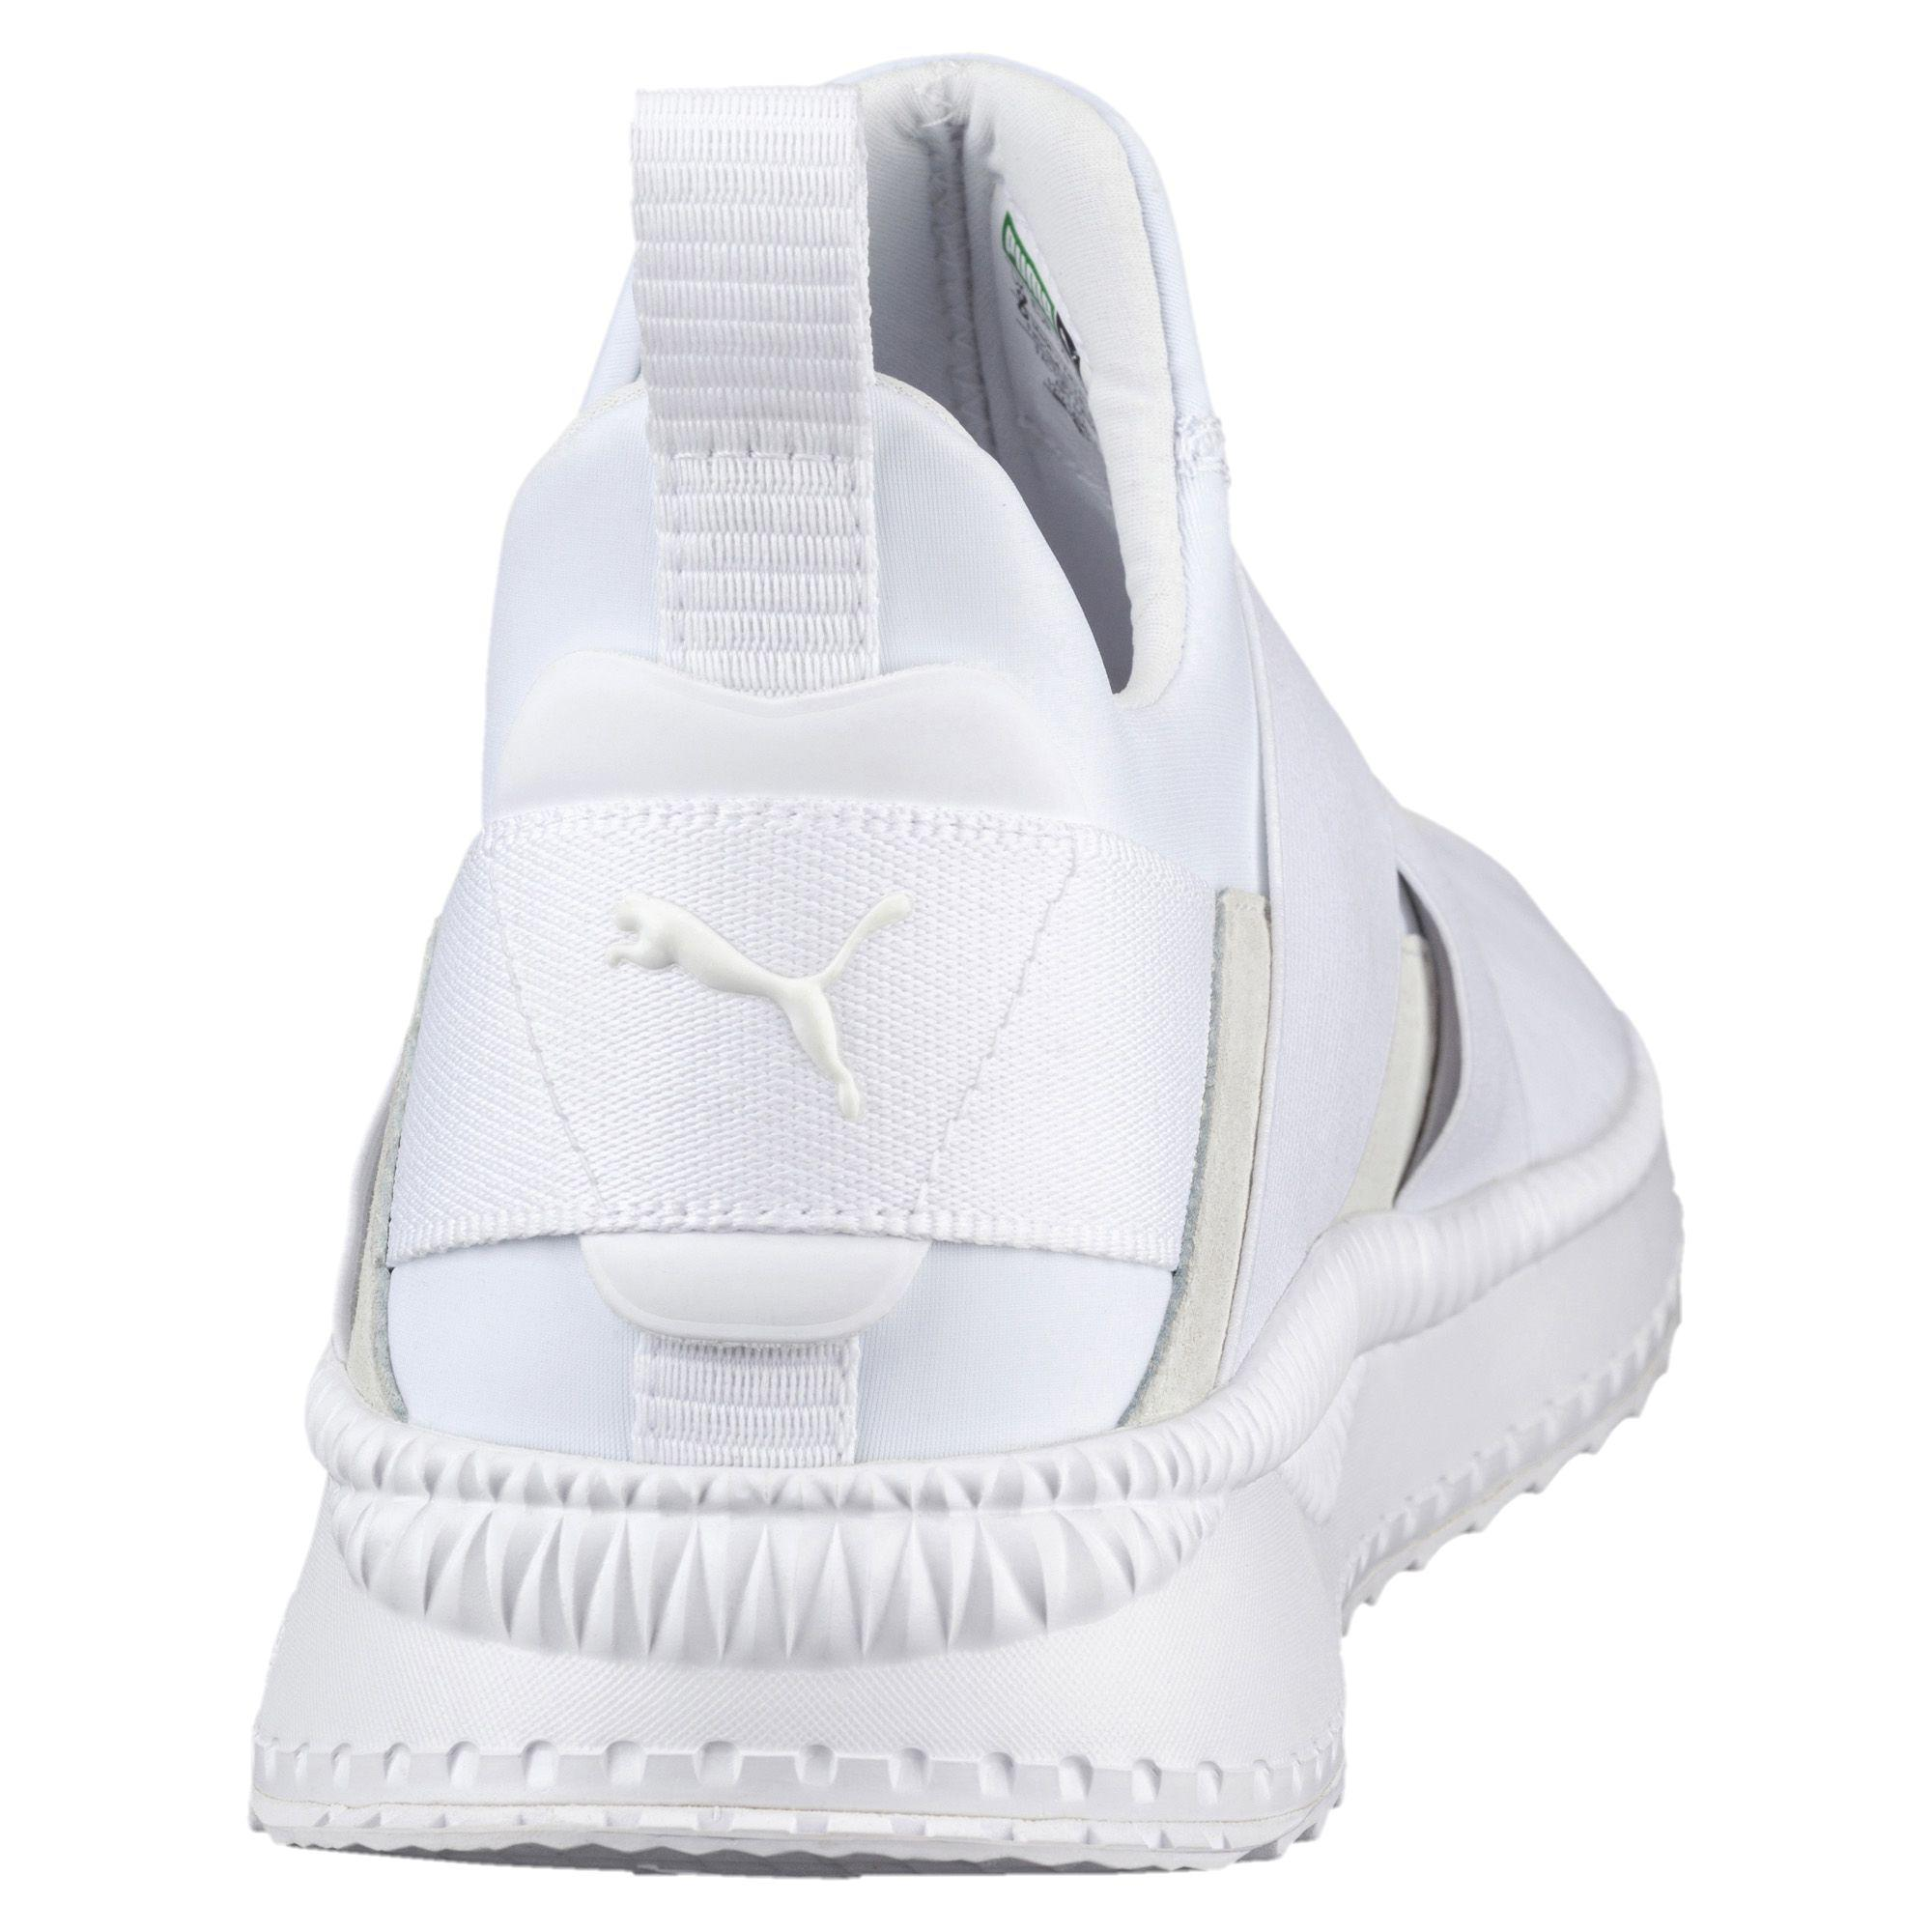 48f81b097ae4 Lyst - PUMA Tsugi Zephyr Sneakers in White for Men